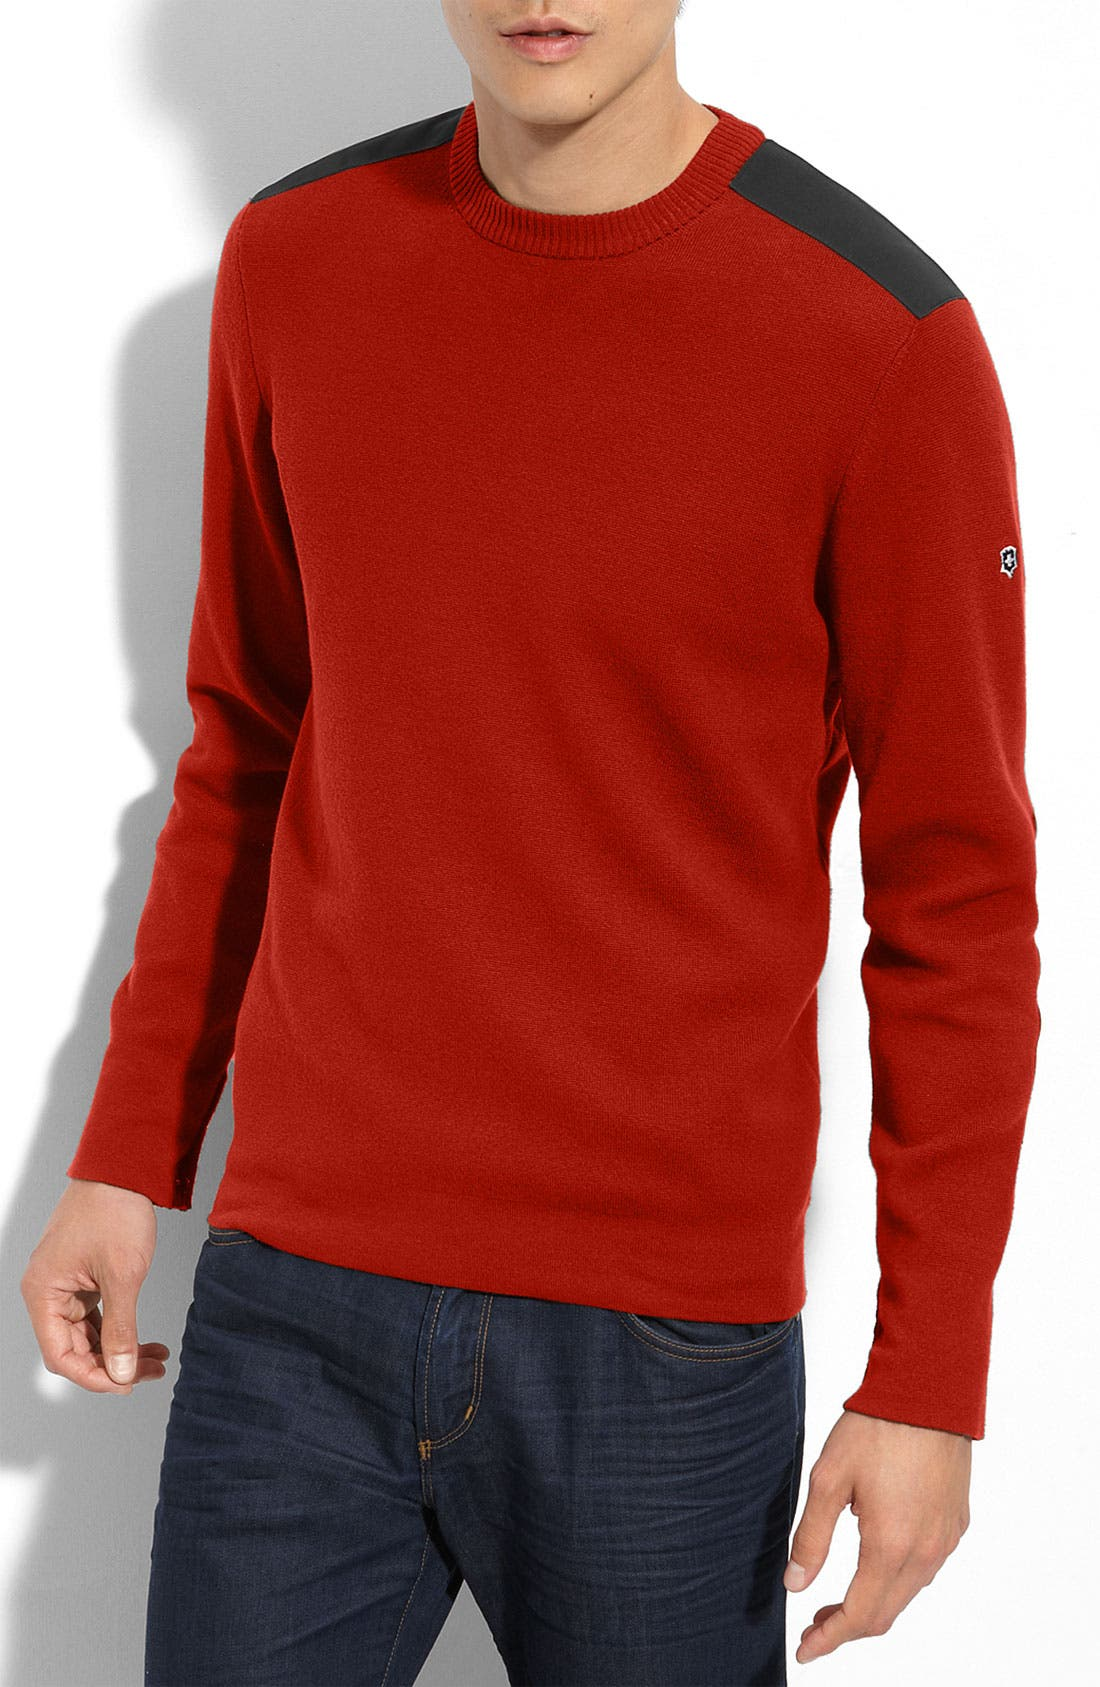 Alternate Image 1 Selected - Victorinox Swiss Army® 'Sleaford' Crewneck Sweater (Online Exclusive)